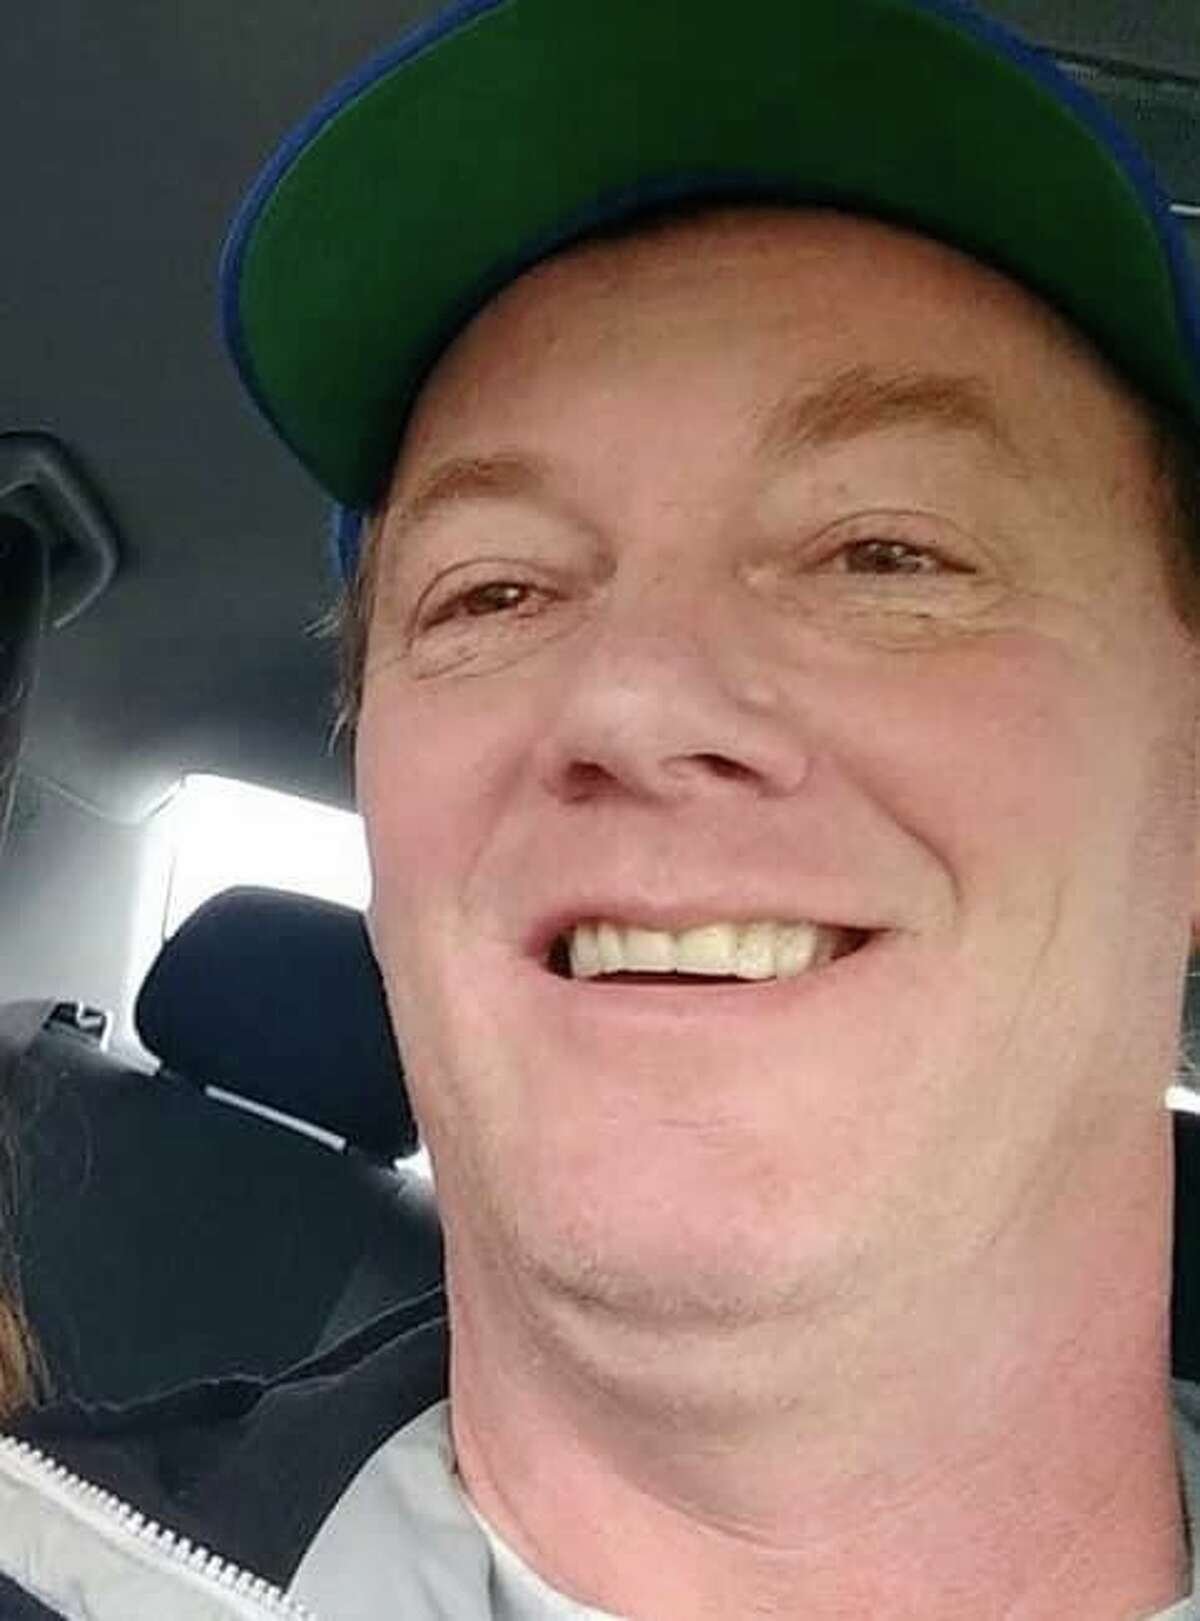 State troopers say they need the public's help finding Gerald Dymond, 50.